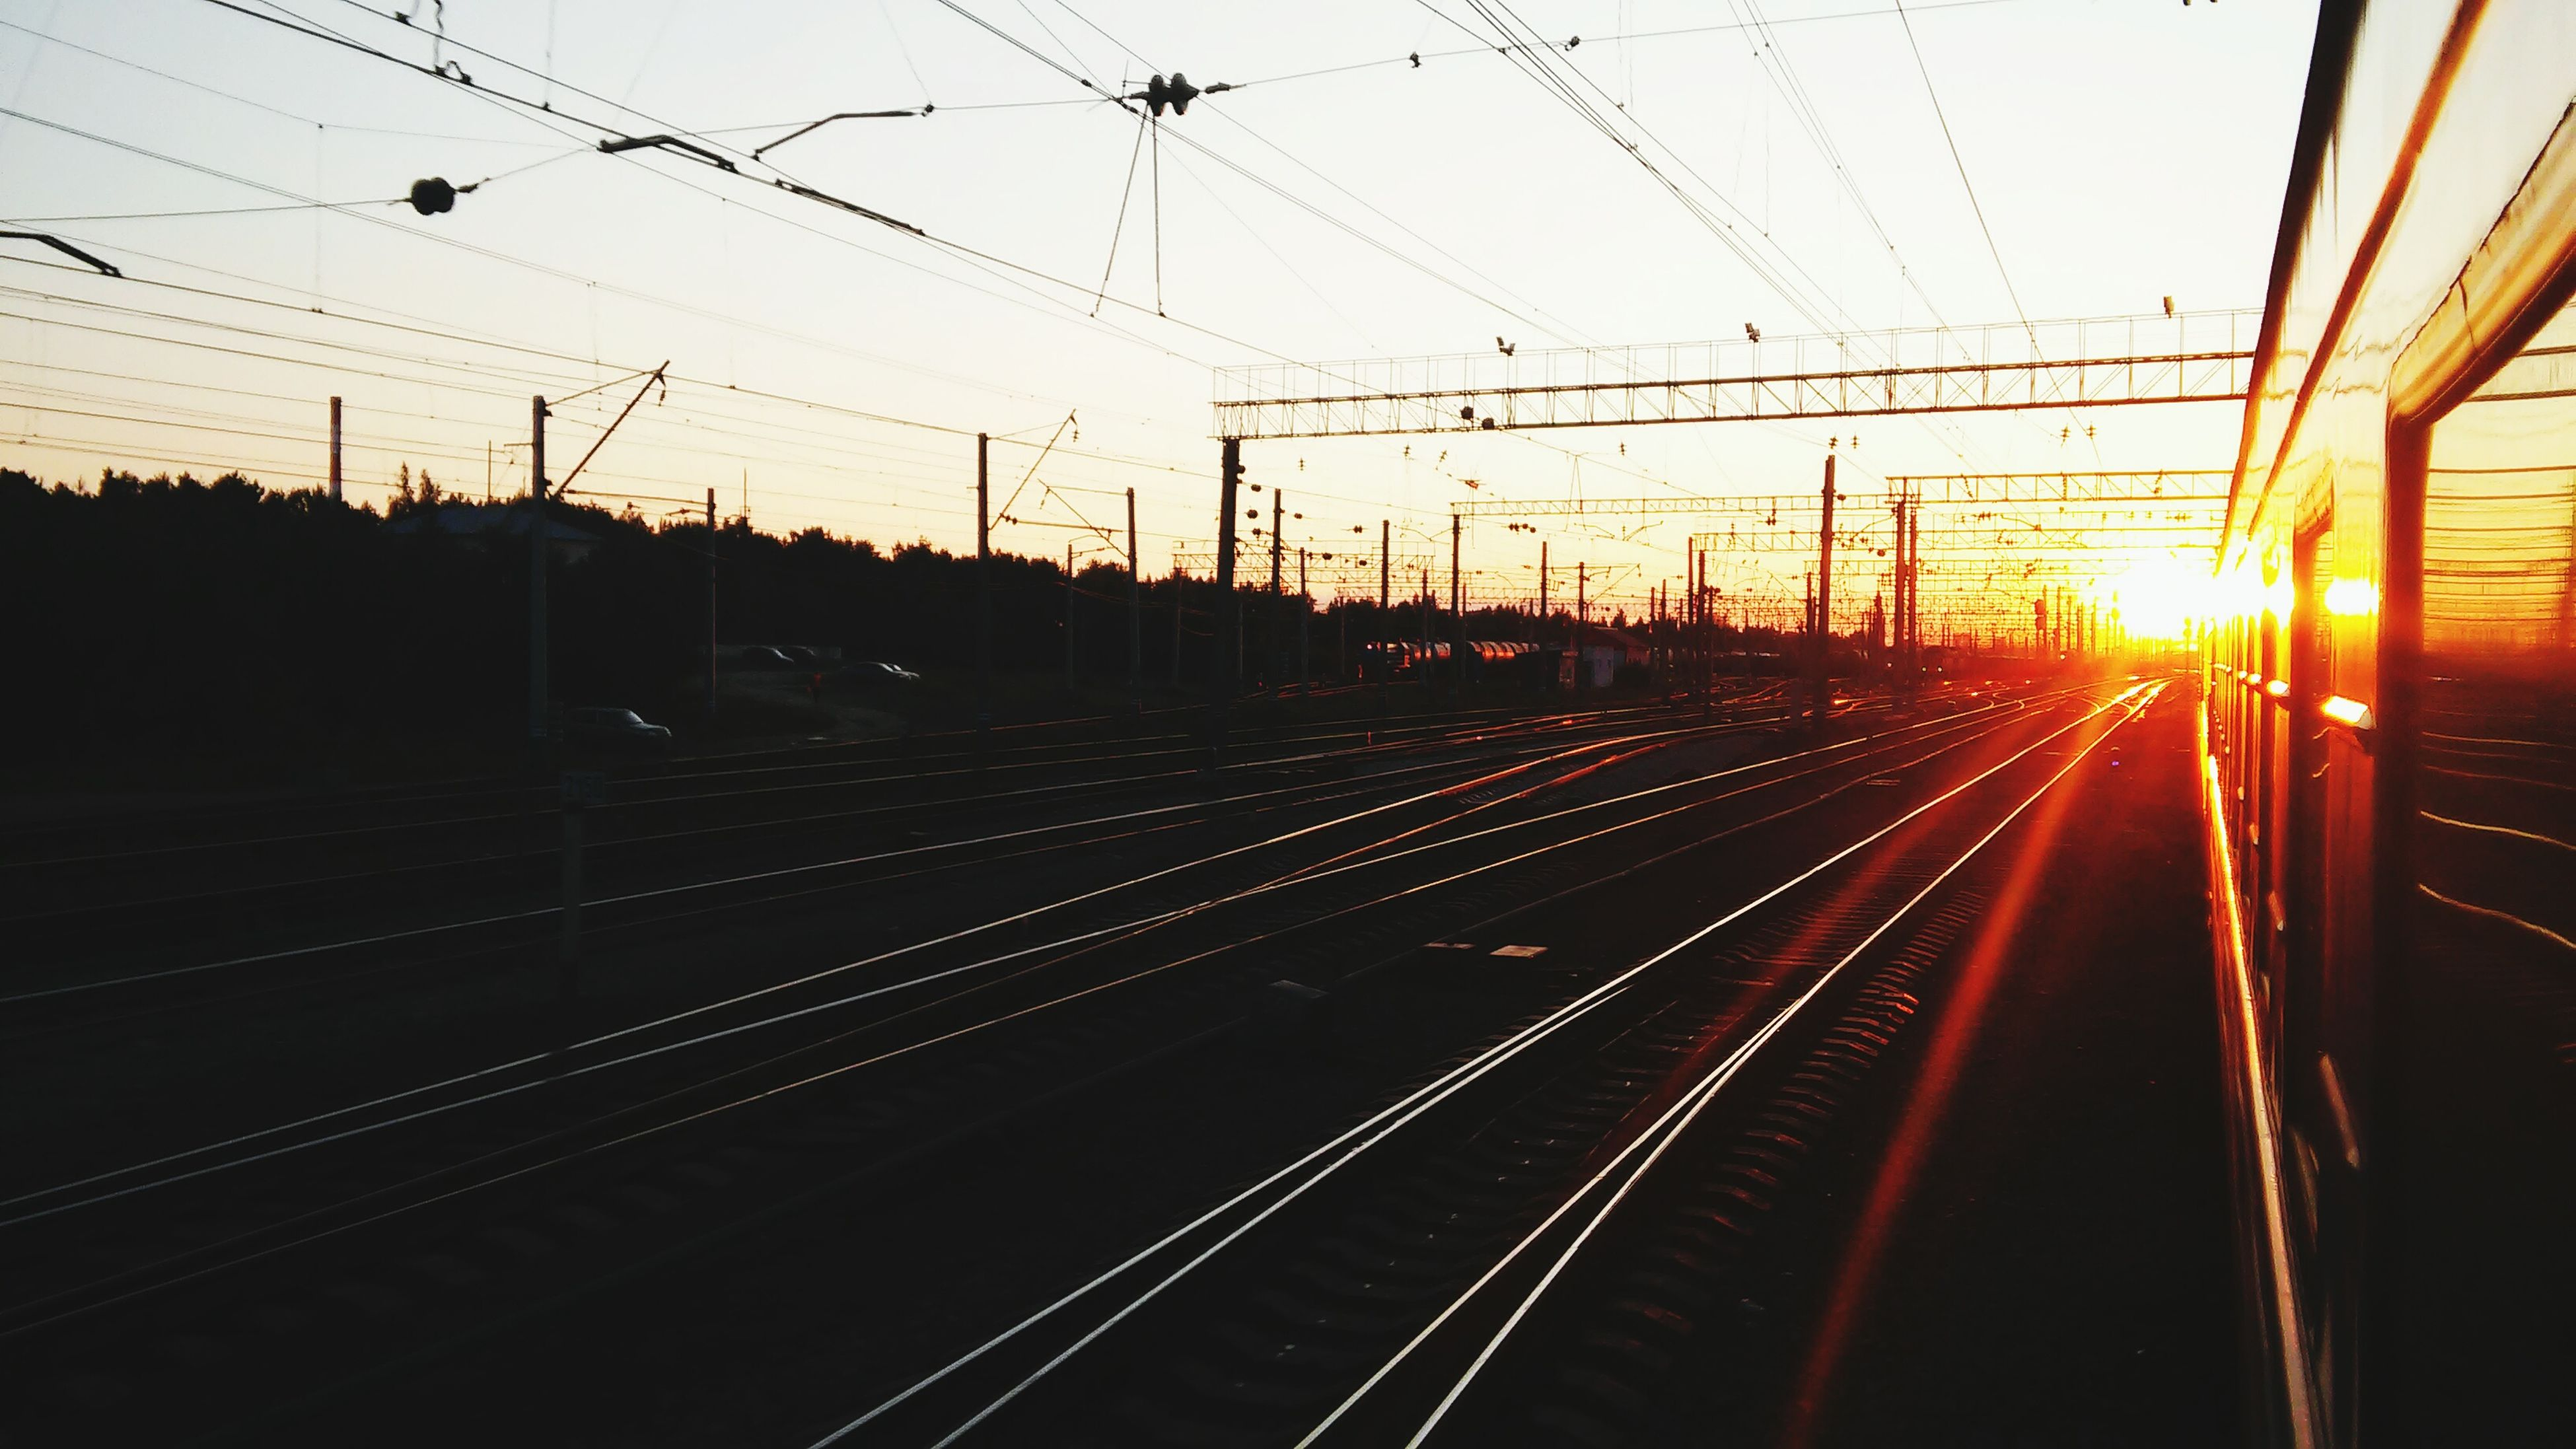 railroad track, rail transportation, transportation, public transportation, power line, sunset, electricity pylon, railroad station platform, railroad station, electricity, power supply, cable, train - vehicle, railway track, mode of transport, travel, sky, diminishing perspective, the way forward, train